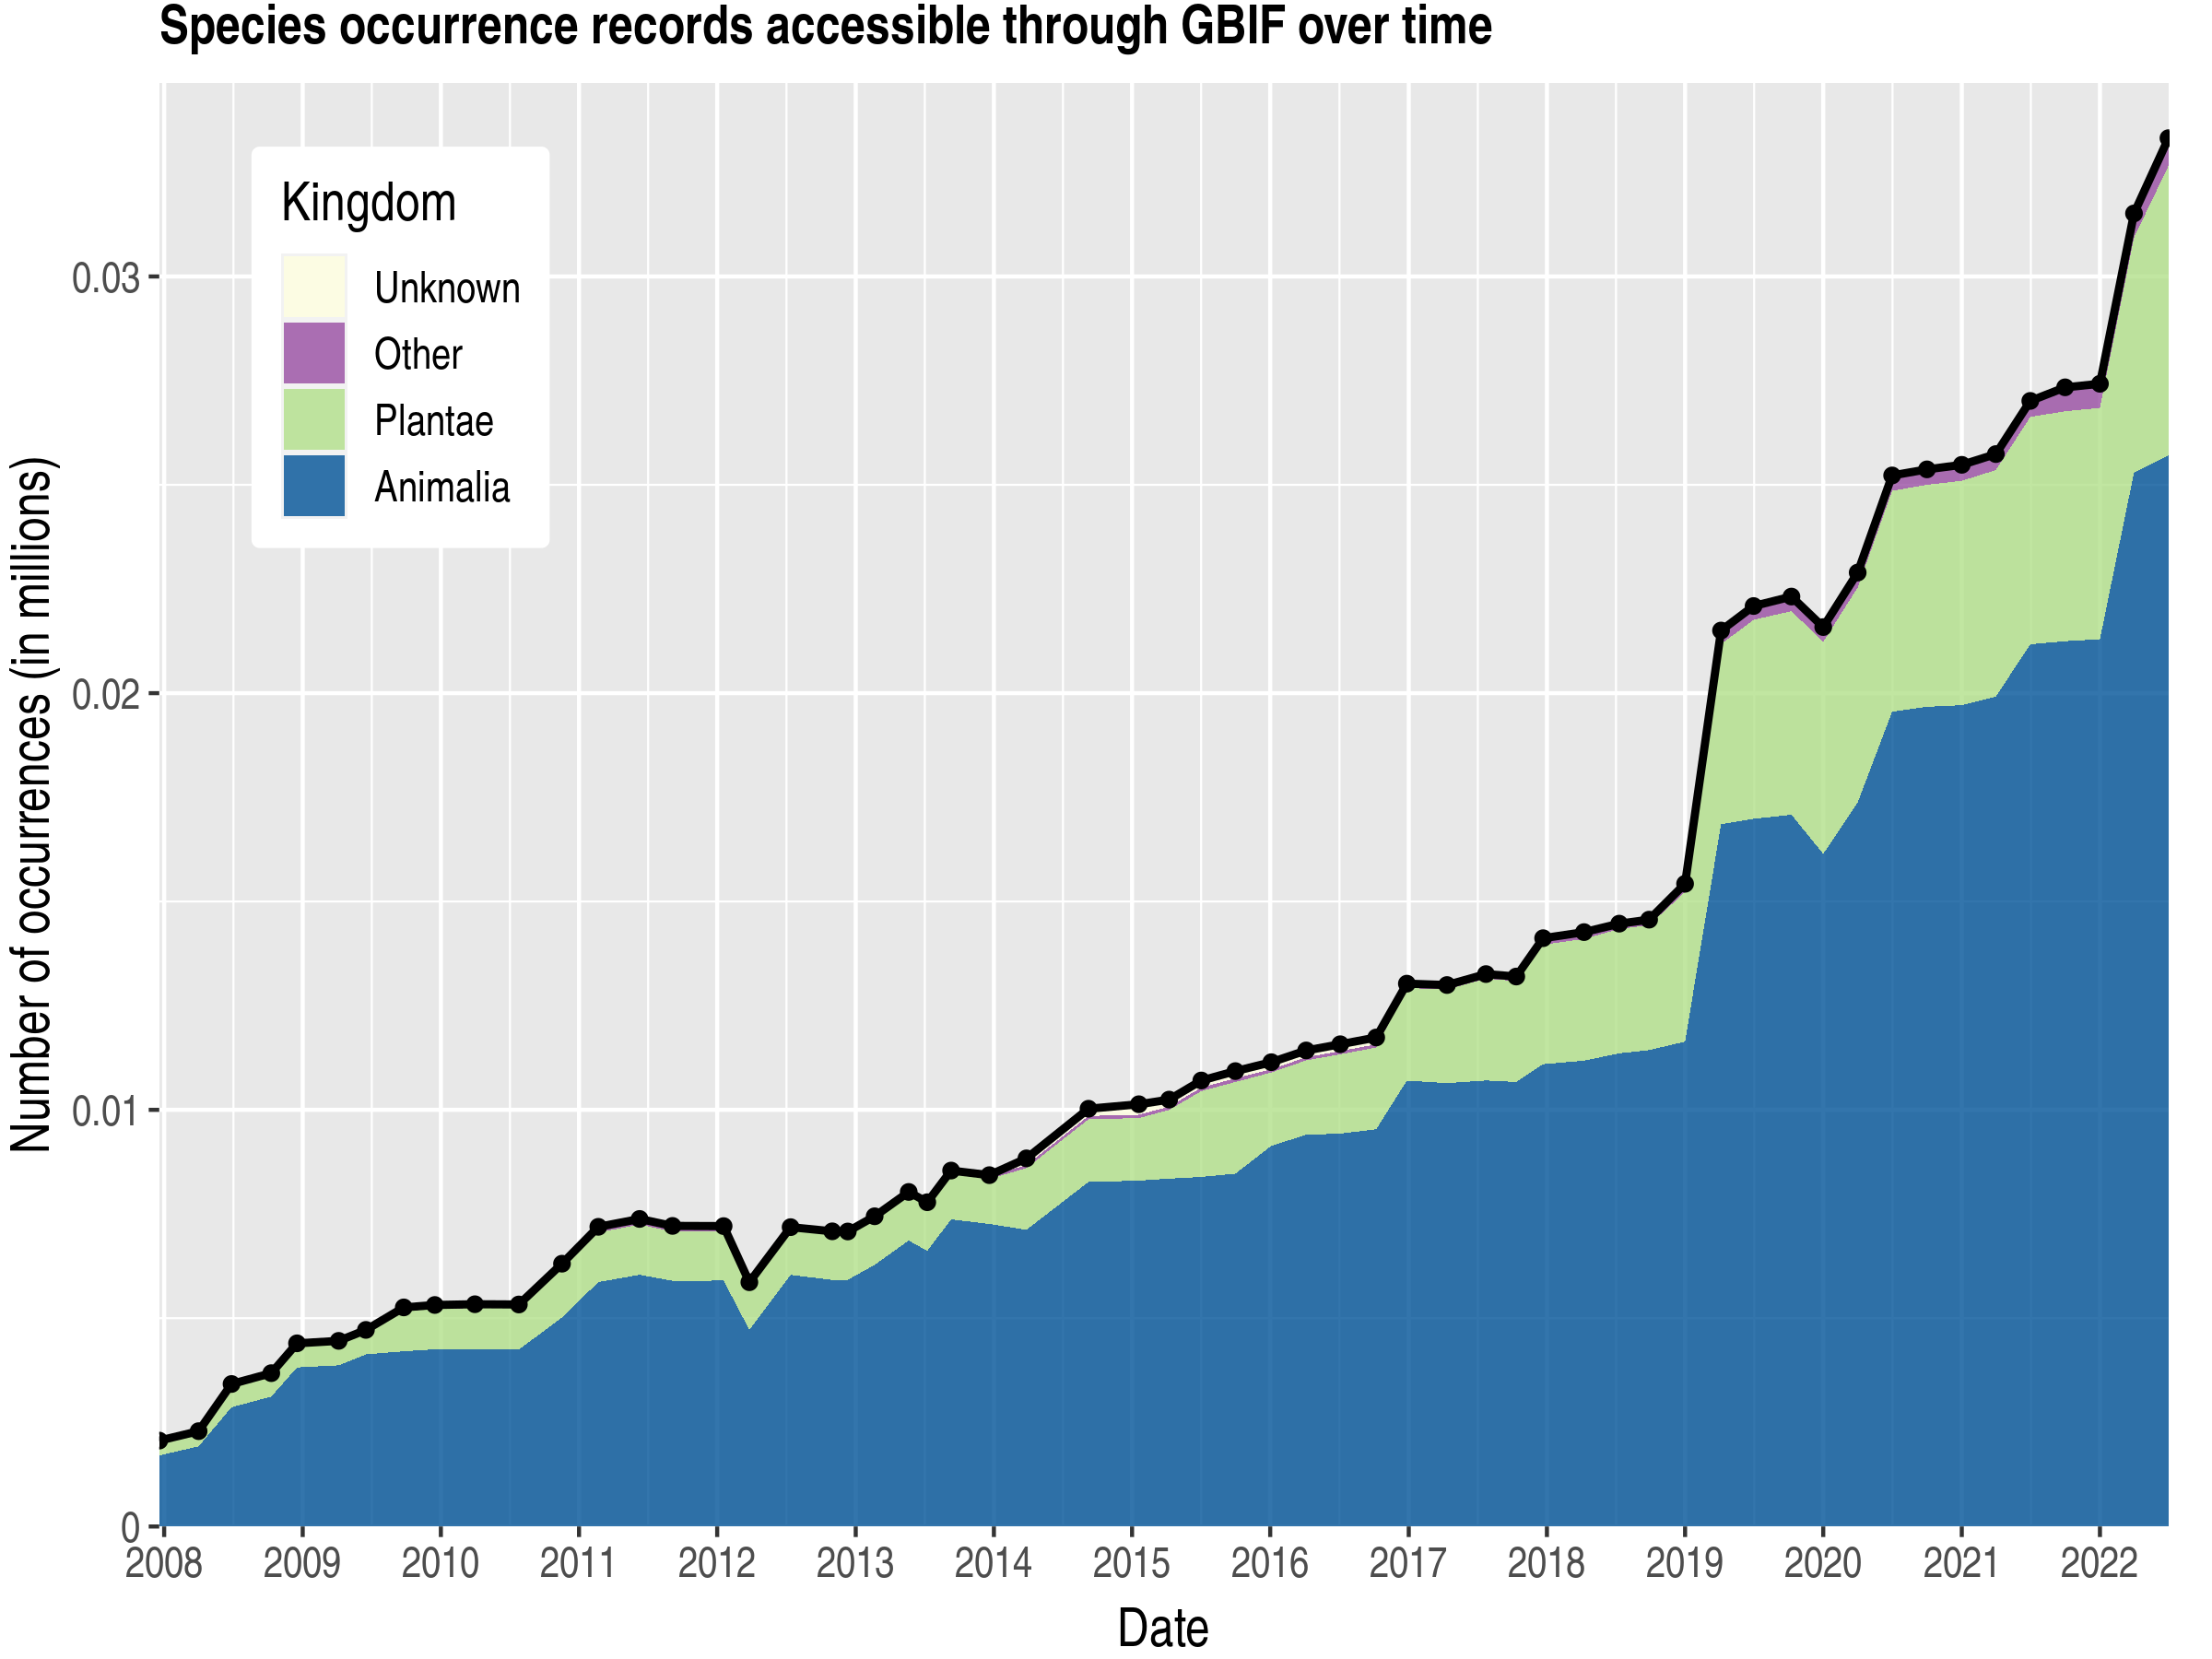 Data trend of records by kingdom about Saint Kitts and Nevis